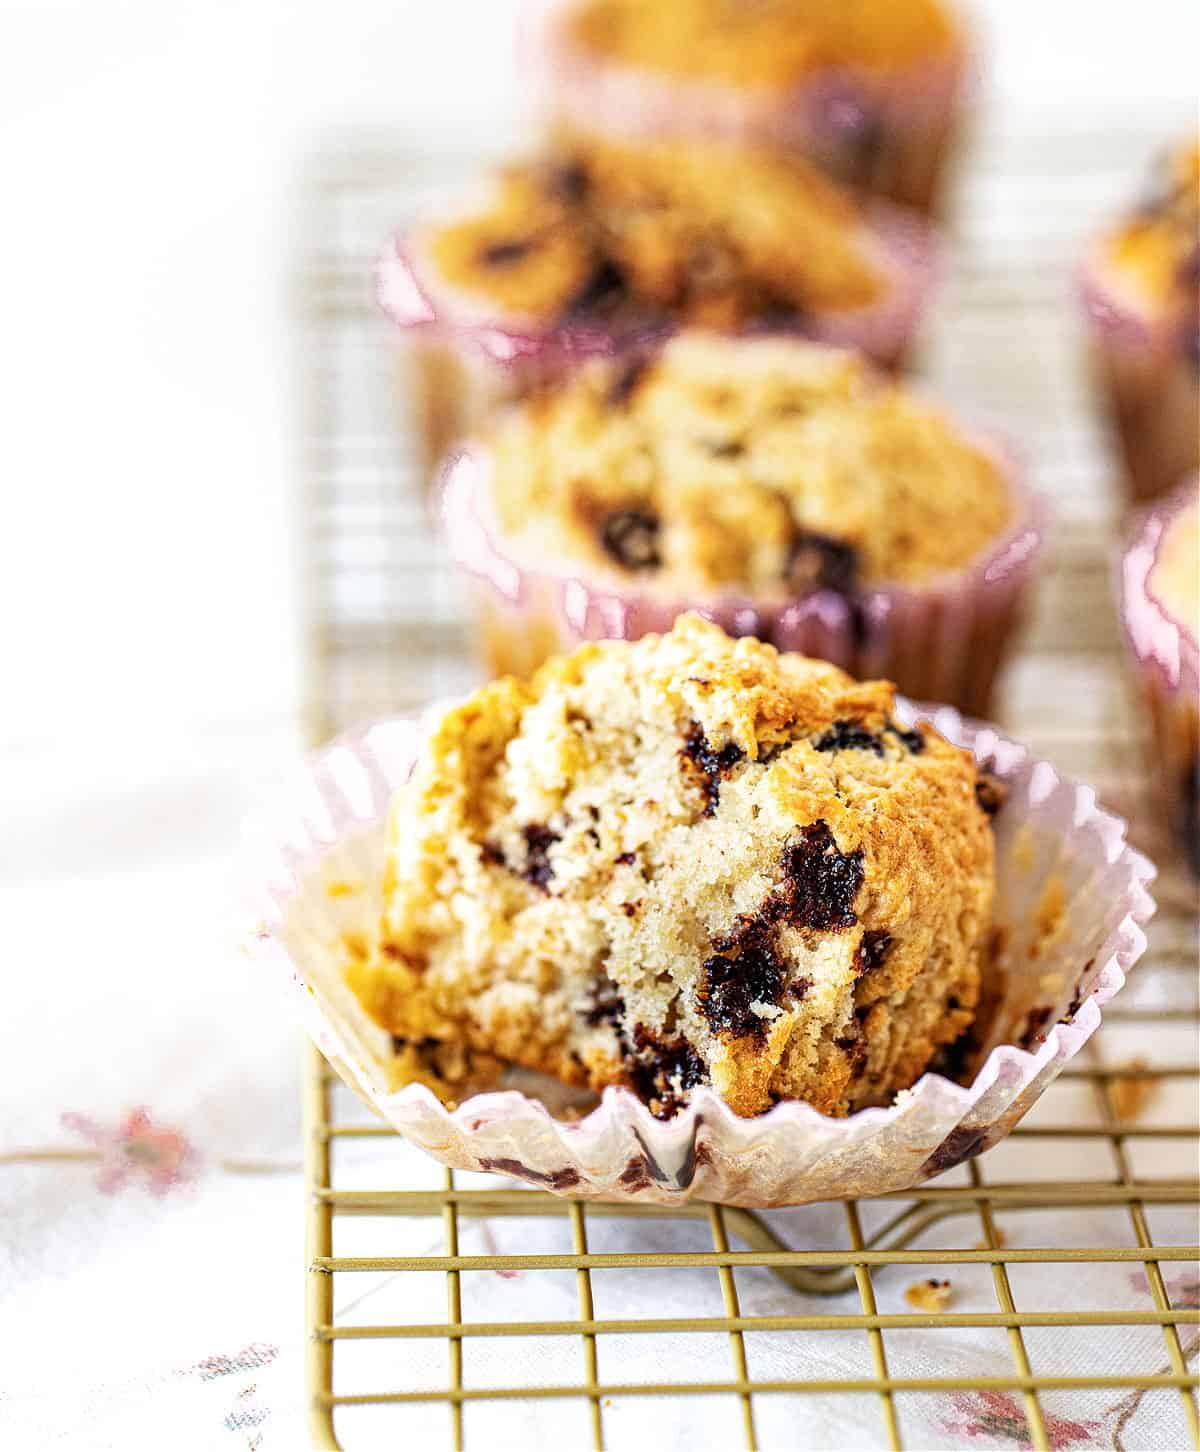 Eaten and whole muffins with chocolate chips on cooling rack